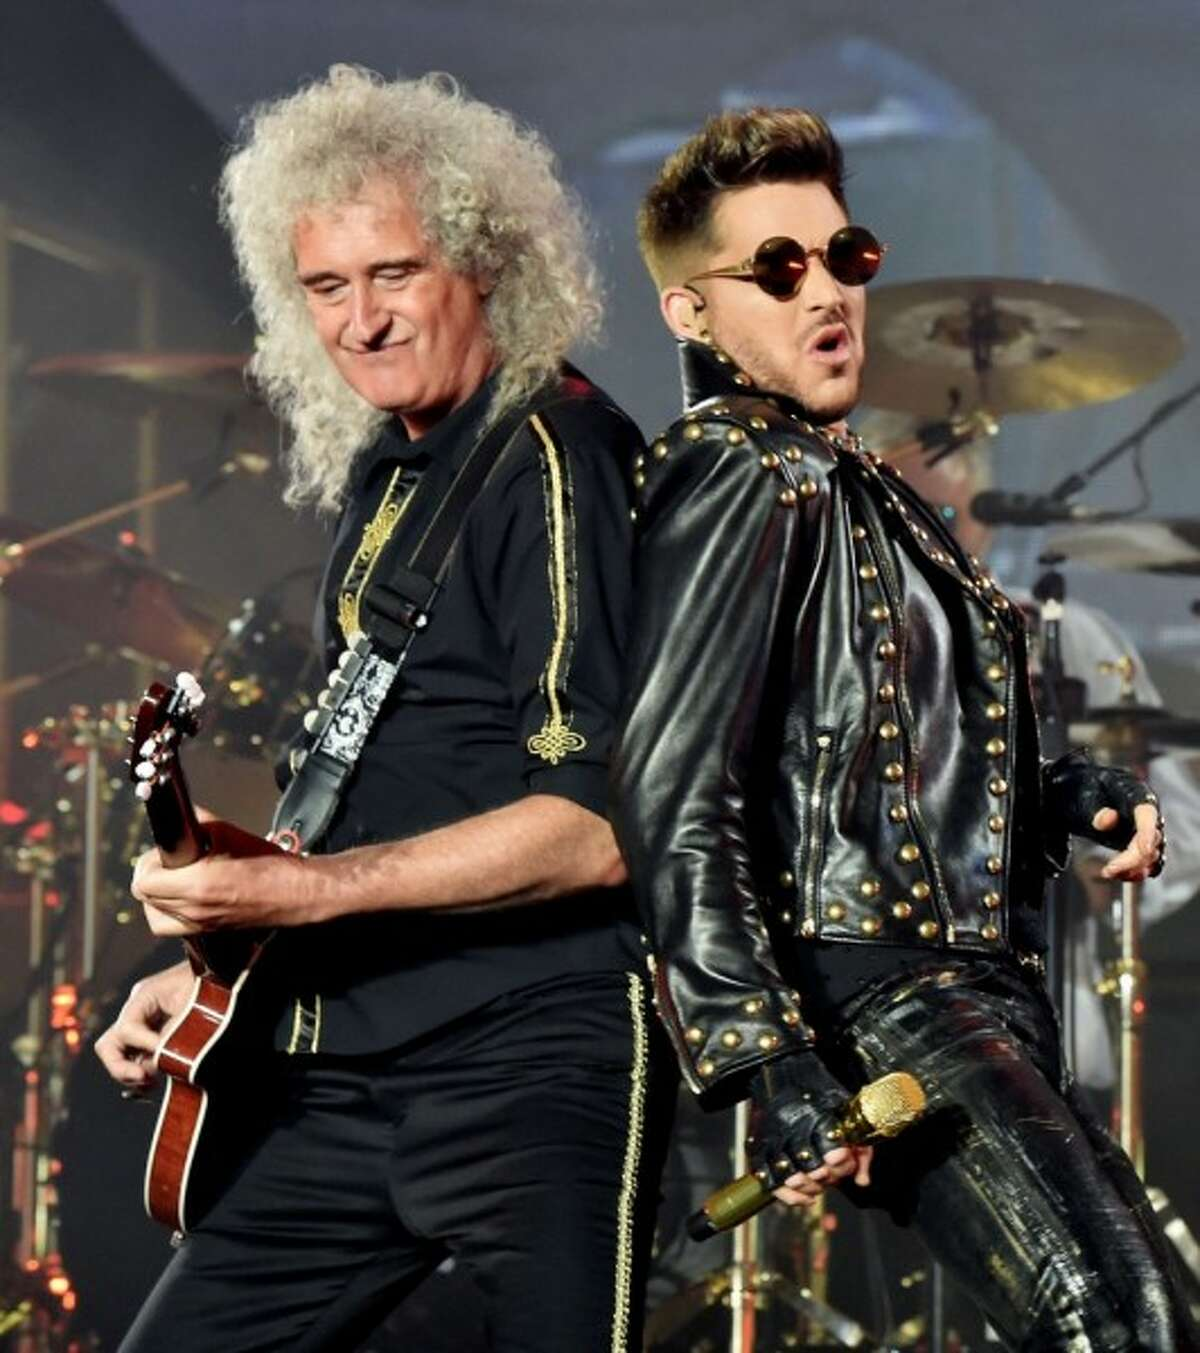 Brian May The guitarist from Queen completed his Ph.D. in astrophysics in 2007.